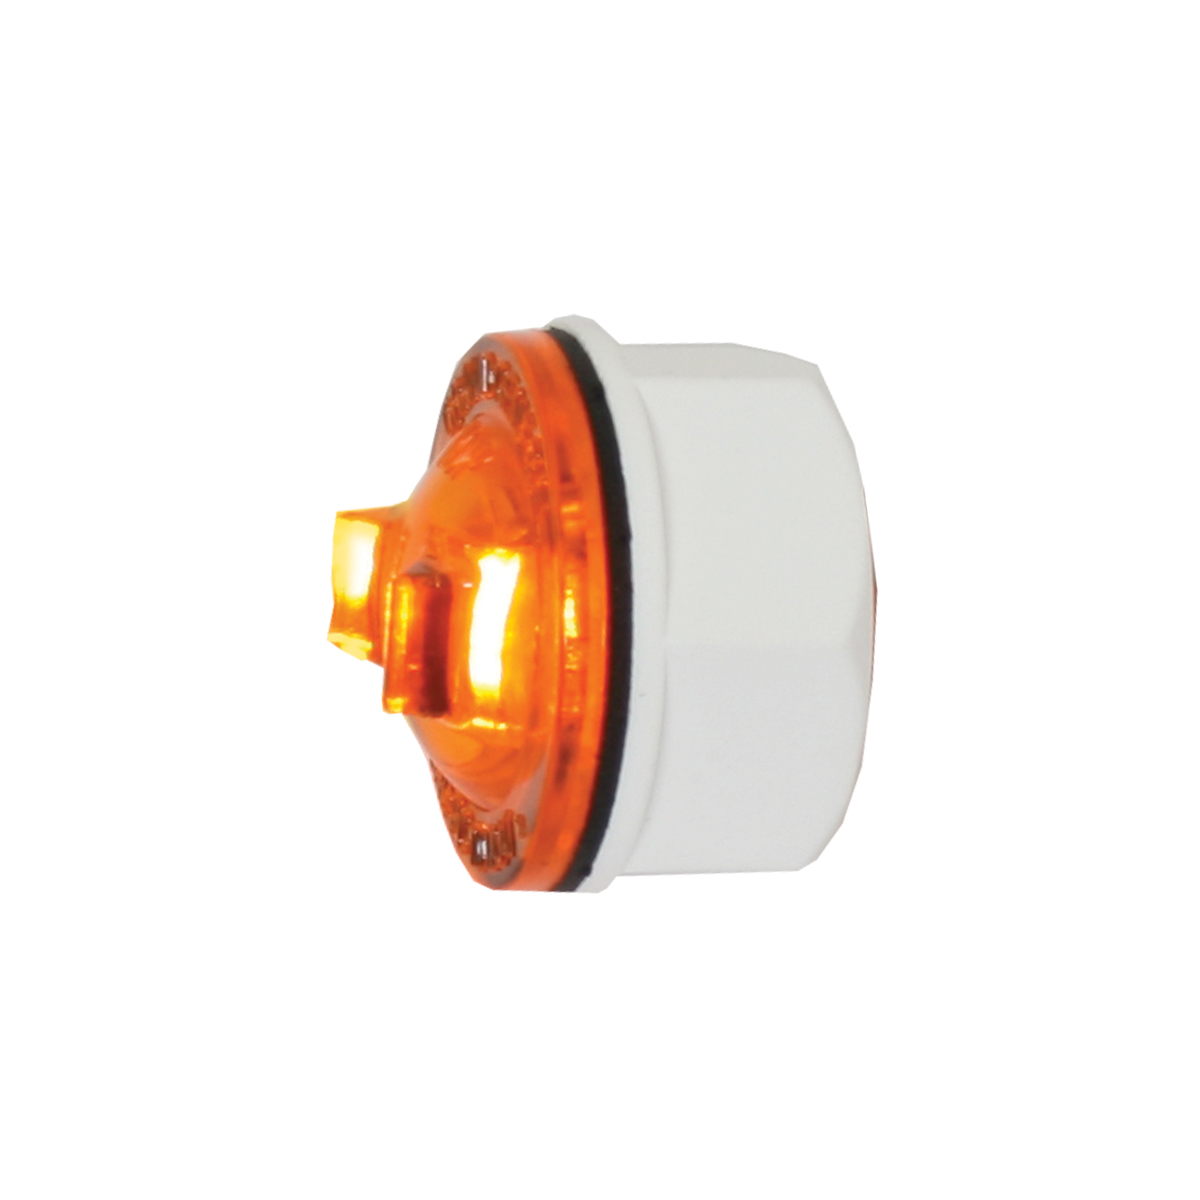 "75280 1"" Dual Function Mini Push/Screw-in Wide Angle LED Light"